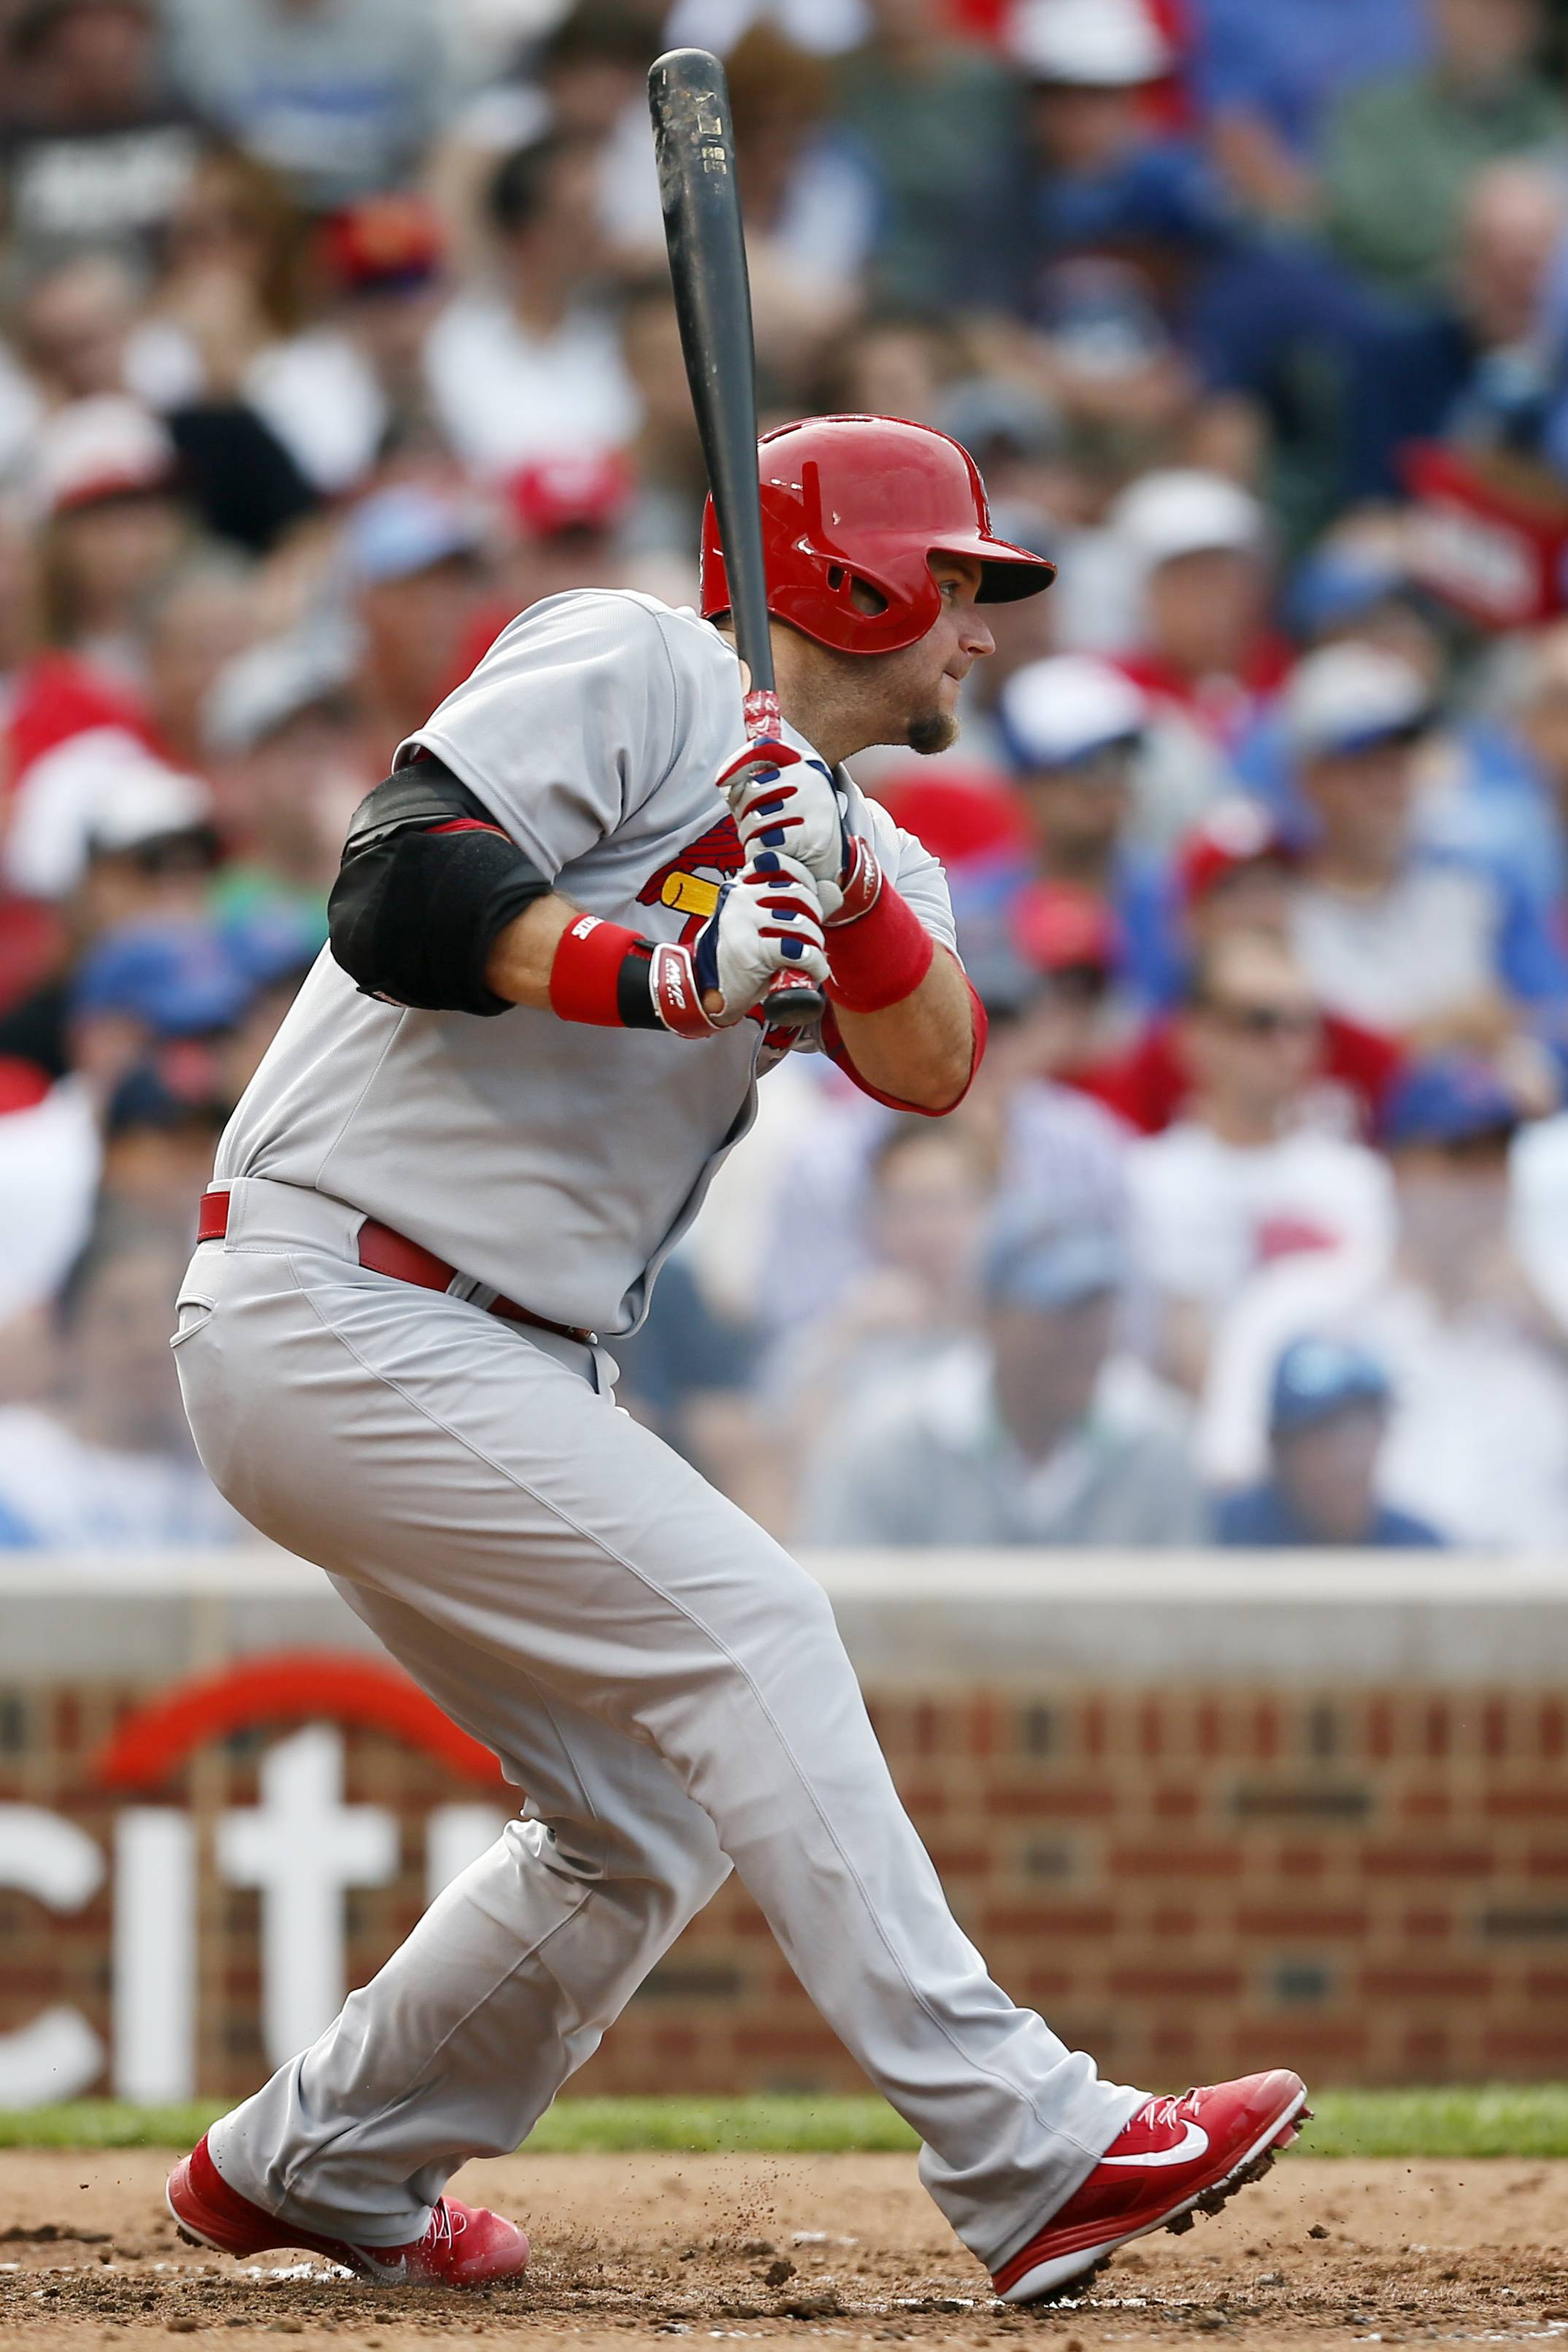 Catcher A.J. Pierzynski went 3-for-4 against the Cubs on Saturday in his debut with the Cardinals.